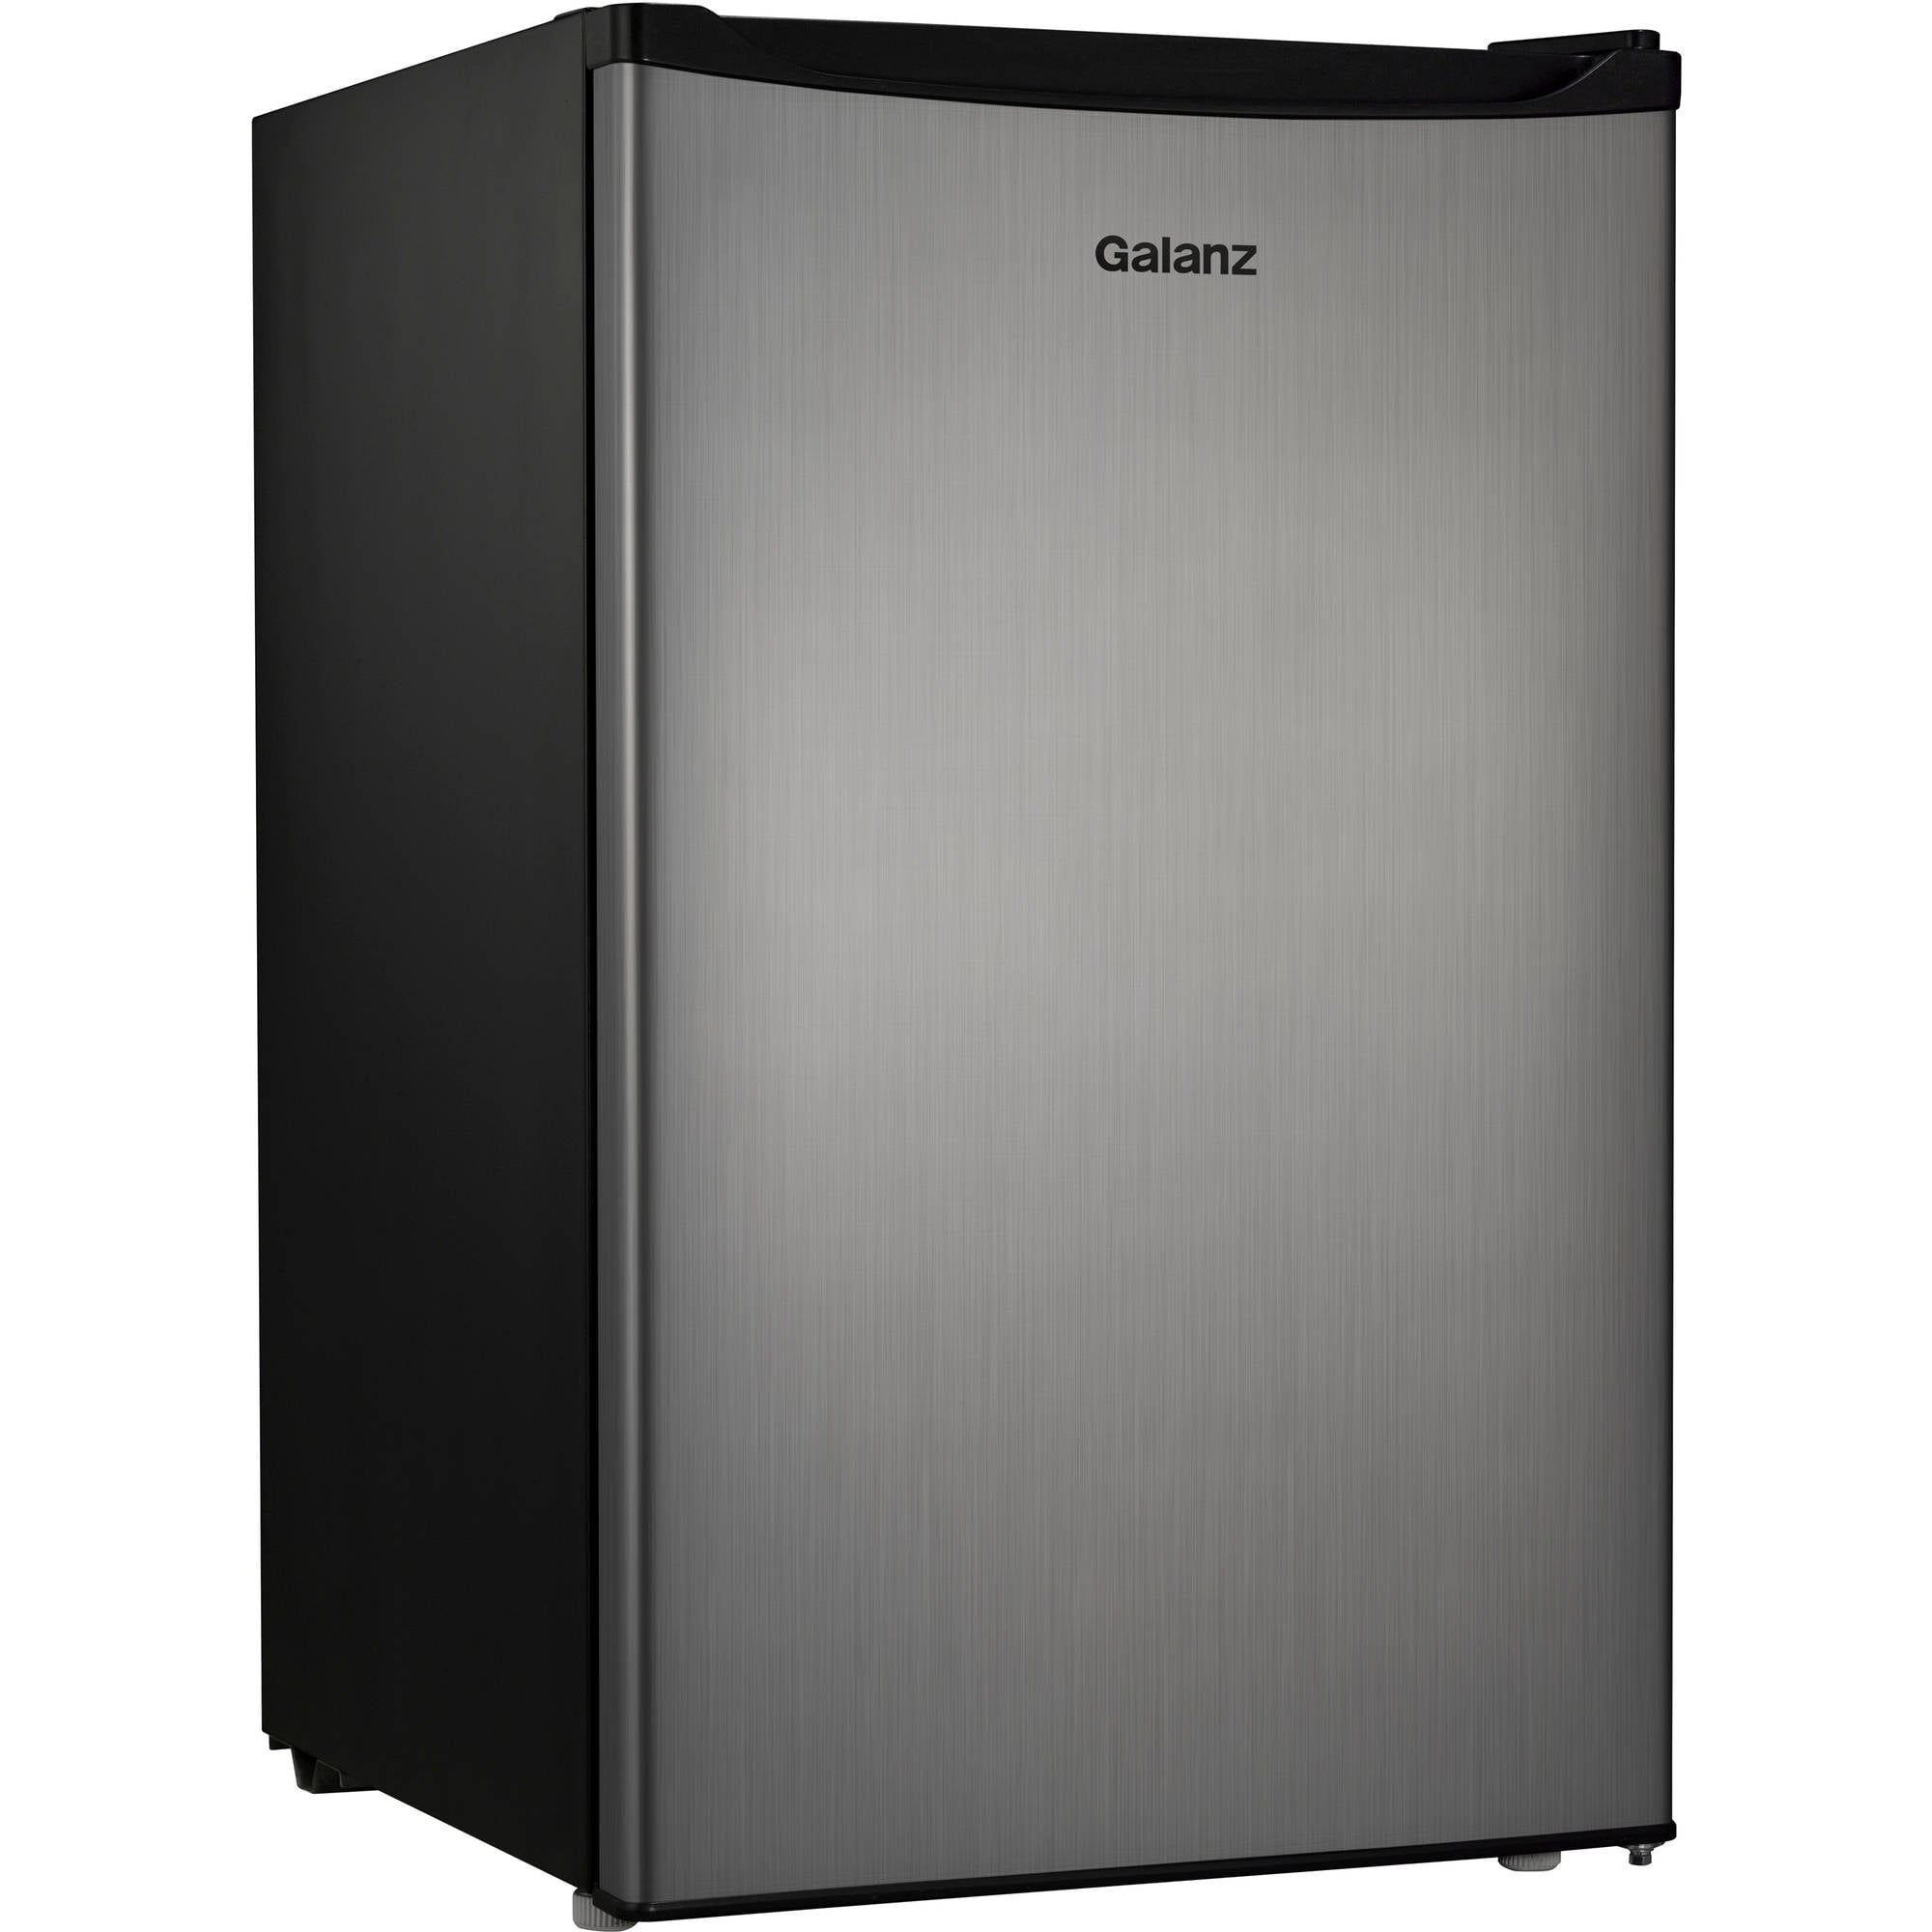 refrigerator 7 5 cu ft. igloo 5.5 cu ft side-by-side 2-door refrigerator/freezer, stainless steel - walmart.com refrigerator 7 5